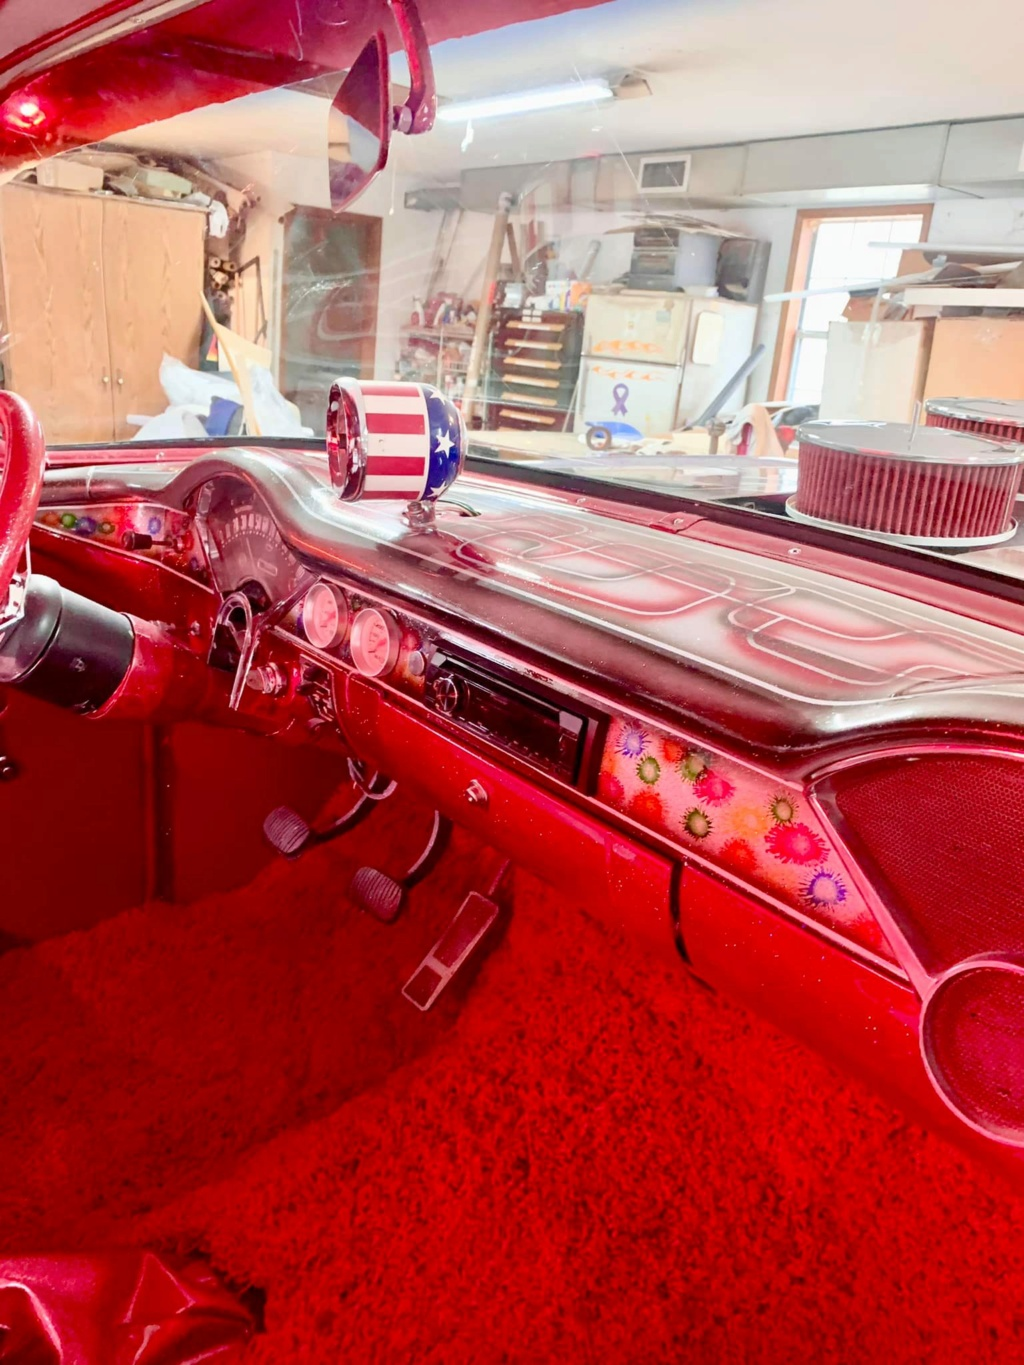 Ronnie N Kristina Jones - 1955 Chevrolet Gasser sixties look with flake, panneling, lace painting 15746810